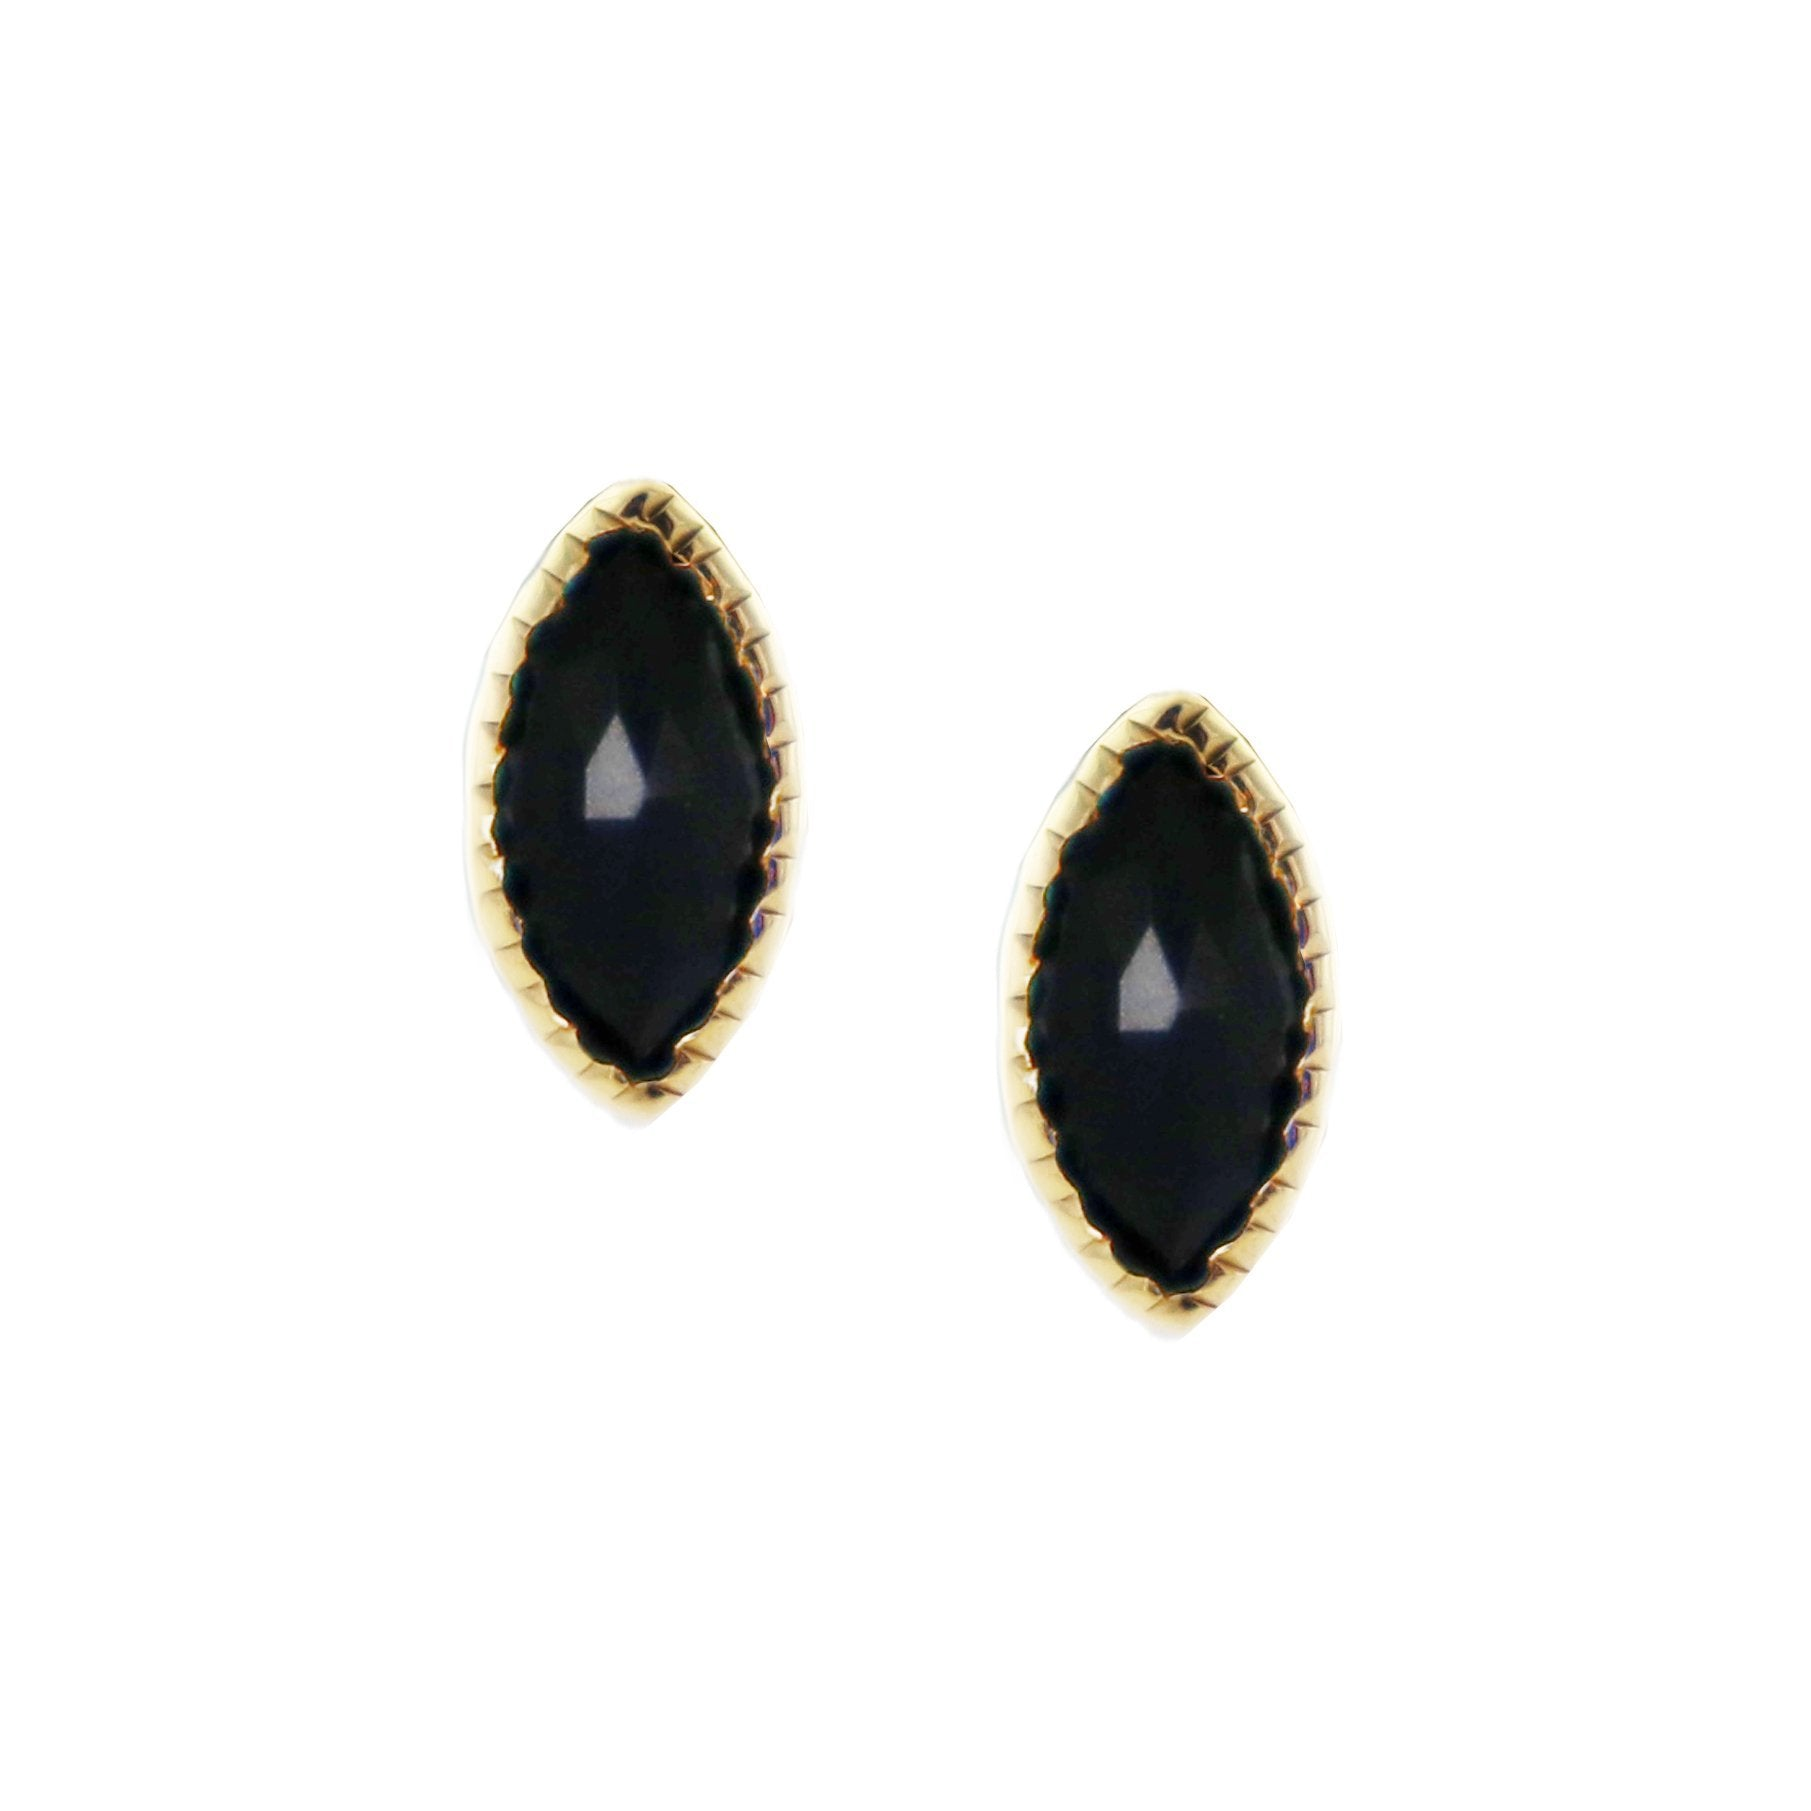 MINI TRUST STUD EARRINGS - BLACK ONYX & GOLD - SO PRETTY CARA COTTER